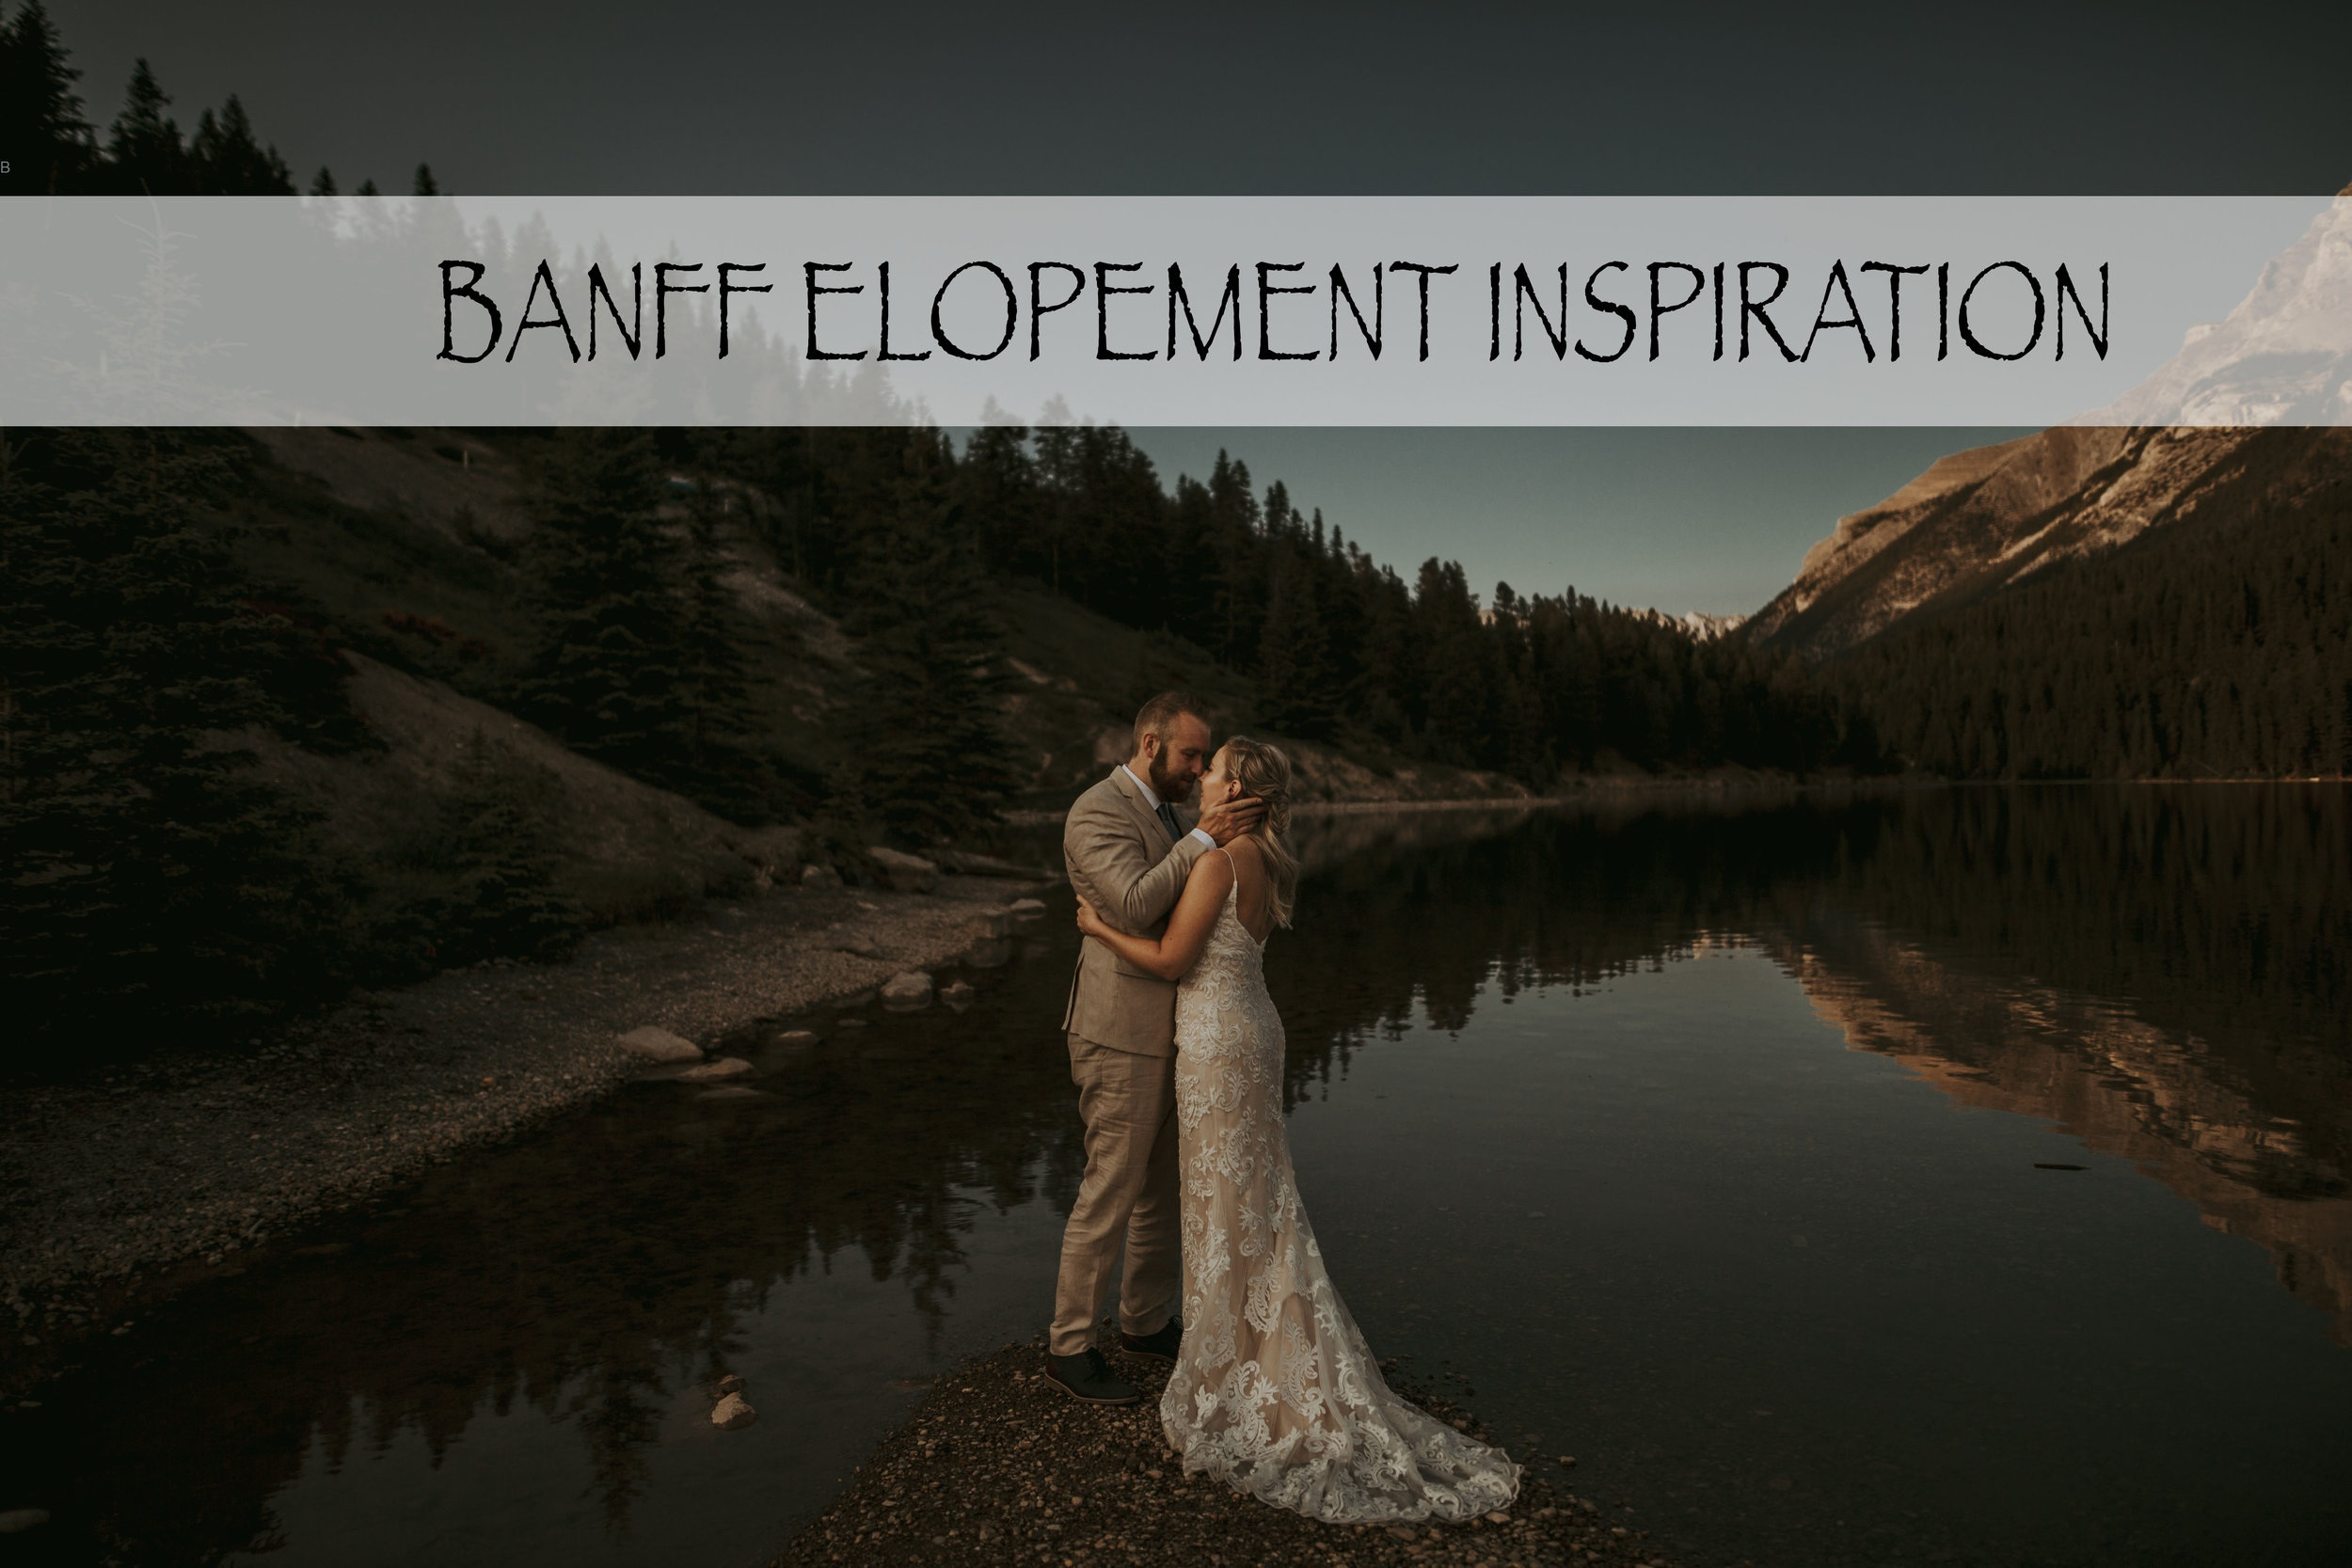 Banff Elopement Photographer,  Banff Elopement Wedding Photographers, Destination Wedding Photographer, Elope in Banff, Best Banff Photographers, Wedding Photography, Banff Canmore Lake Louise Emerald Lake Lodge Adventure Session, Canada Wedding Photographer, Canmore Elopement Photography, Intimate Weddings, Banff Weddings, Canmore Weddings, Emerald Lake Lodge Weddings, Emerald Lake Lodge Elopements, Best Photographers in the World, Small Wedding Photographers, Intimate Wedding Photography, Banff Small Wedding Photographer, Canmore Intimate Wedding Photography, Emerald Lake Lodge Small Wedding Photographers, Banff National Park Weddings, Ayla Love Photography, Mikayla Doty, Mikay Noton, Best Calgary Wedding Photographers, Best Calgary Photographers, Moraine Lake Elopement Packages, Rocky Mountain Elopement Packages, Banff Mountain Wedding, Banff Elopement Photography, Destination Wedding Photography, Banff Wedding Photography, Adventure Photographers, Adventure Photography, Banff Adventure Session Photographers